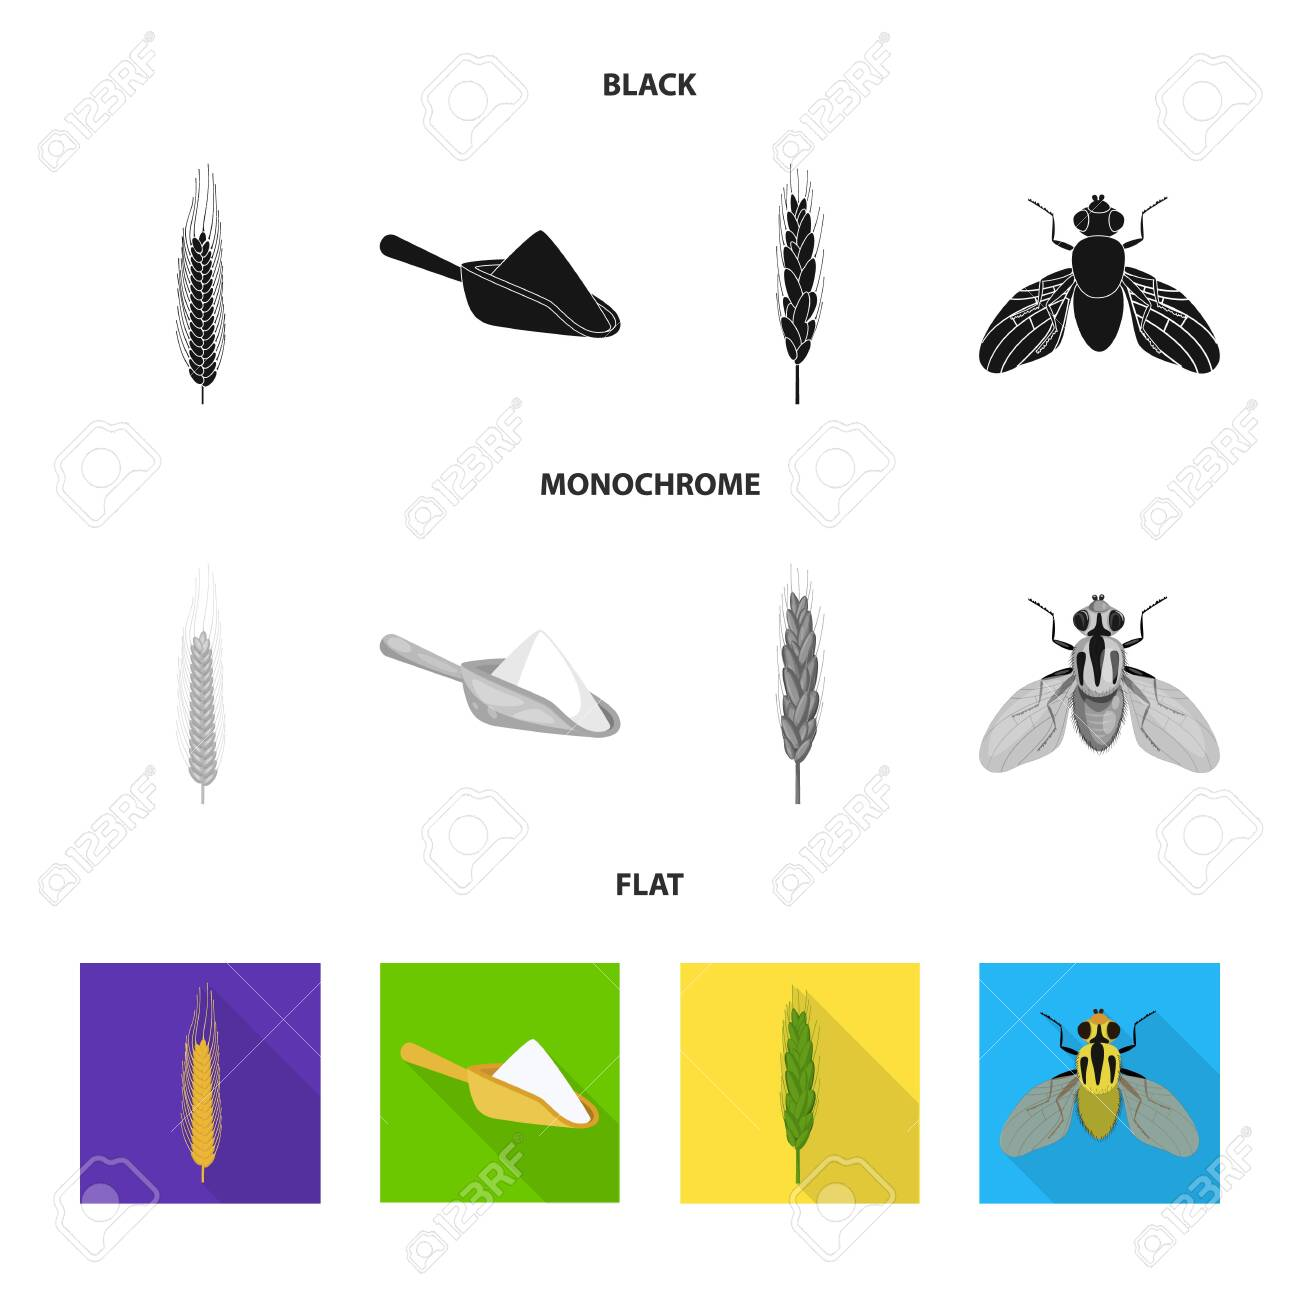 128967621-bitmap-illustration-of-agriculture-and-farming-symbol-collection-of-agriculture-and-plant-stock-symb.jpg